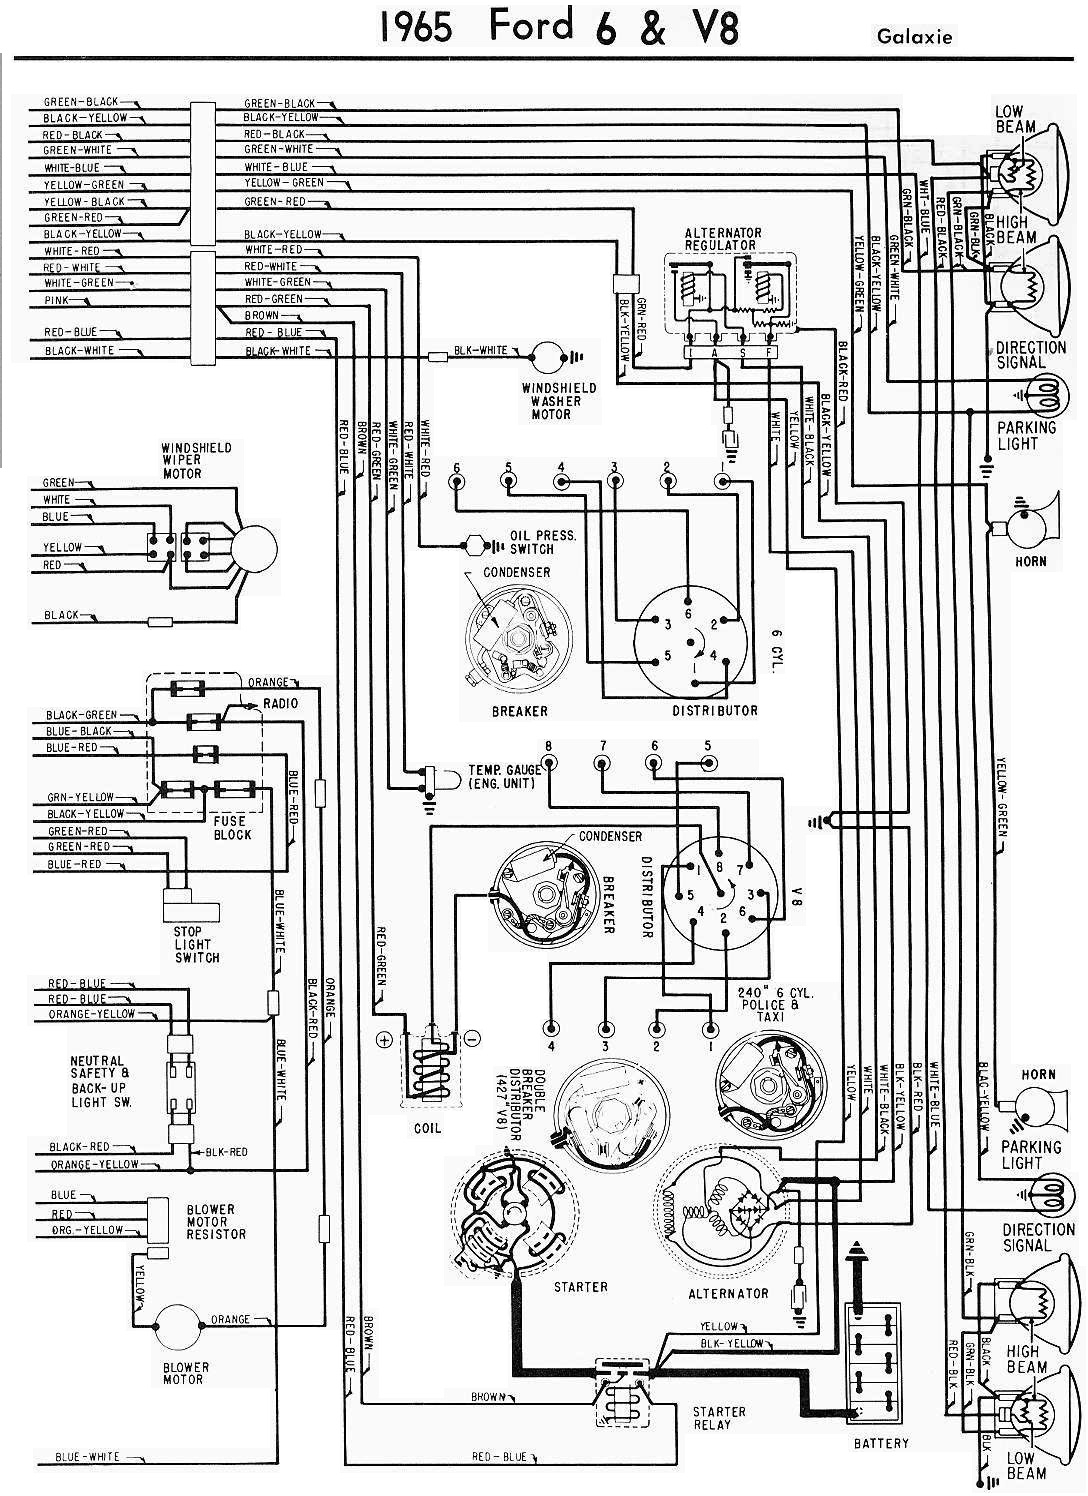 free download wiring diagrams 1966 ford falcon comparative, Wiring diagram